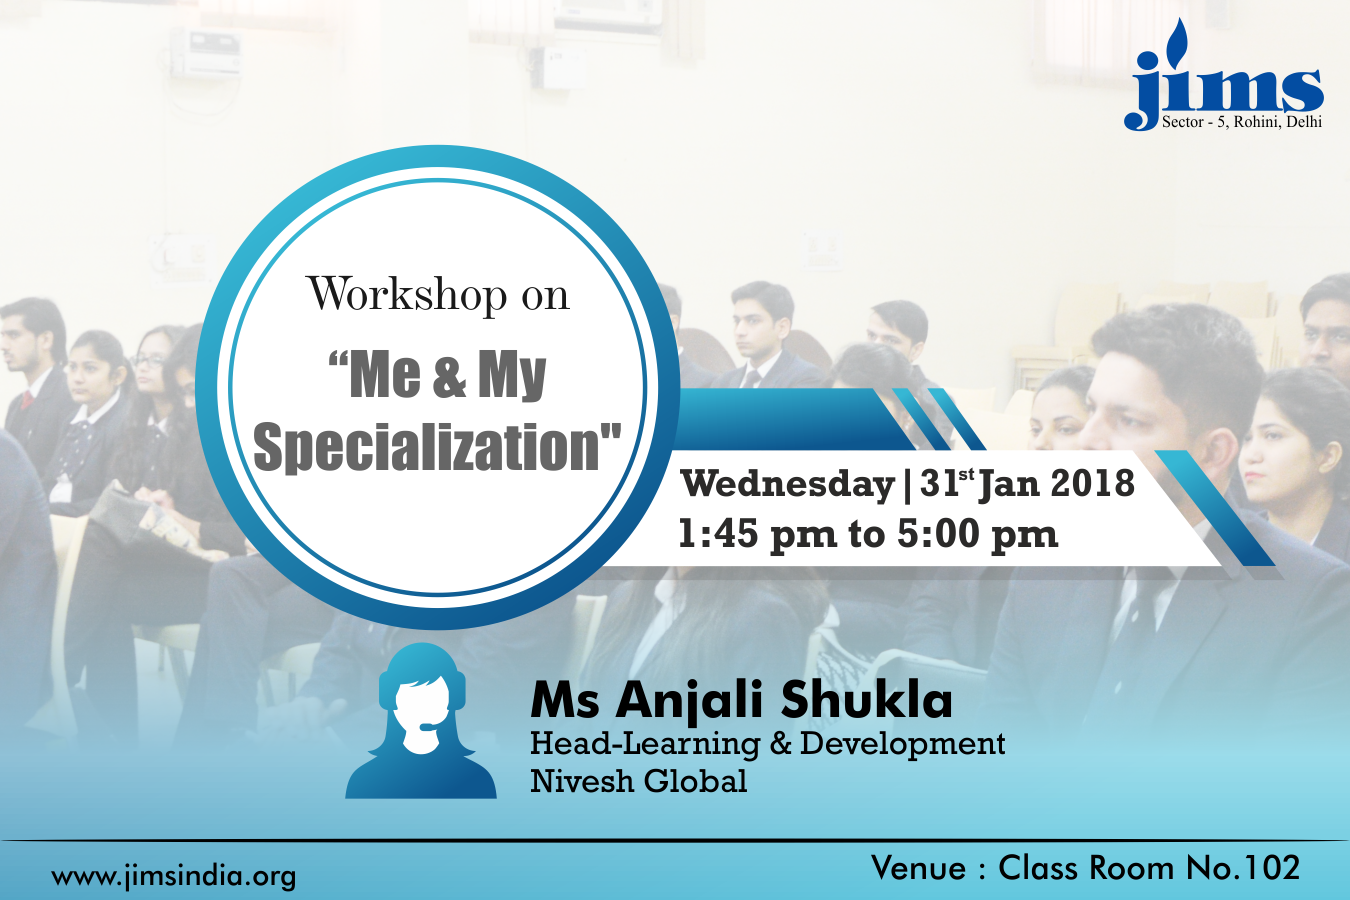 JIMS is organizing a workshop on Me and My Specialisation